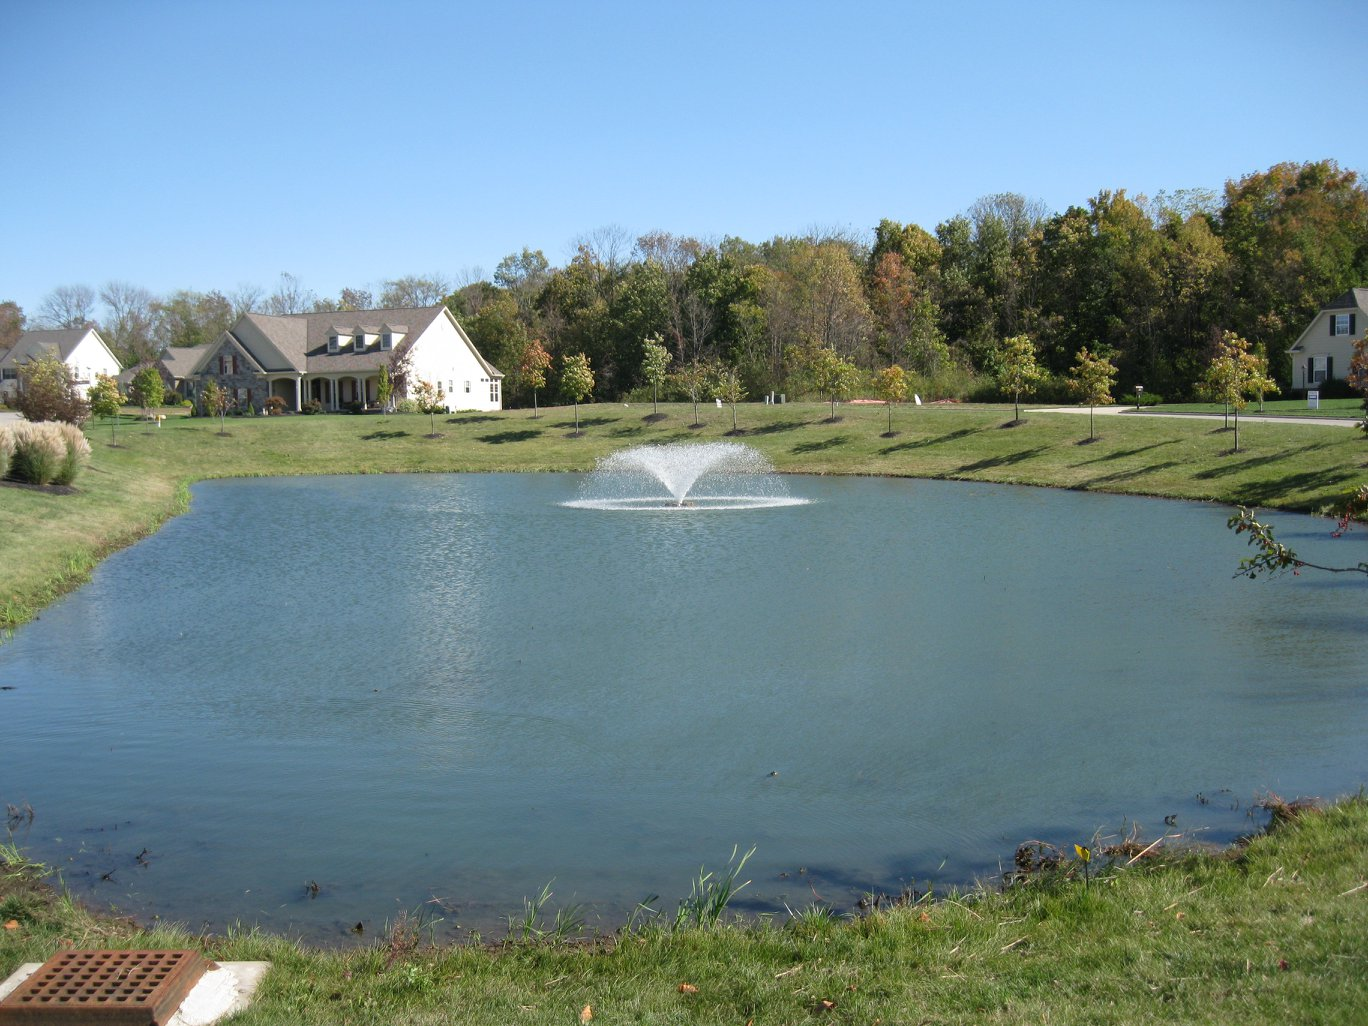 After Aqua Doc cattail removal services